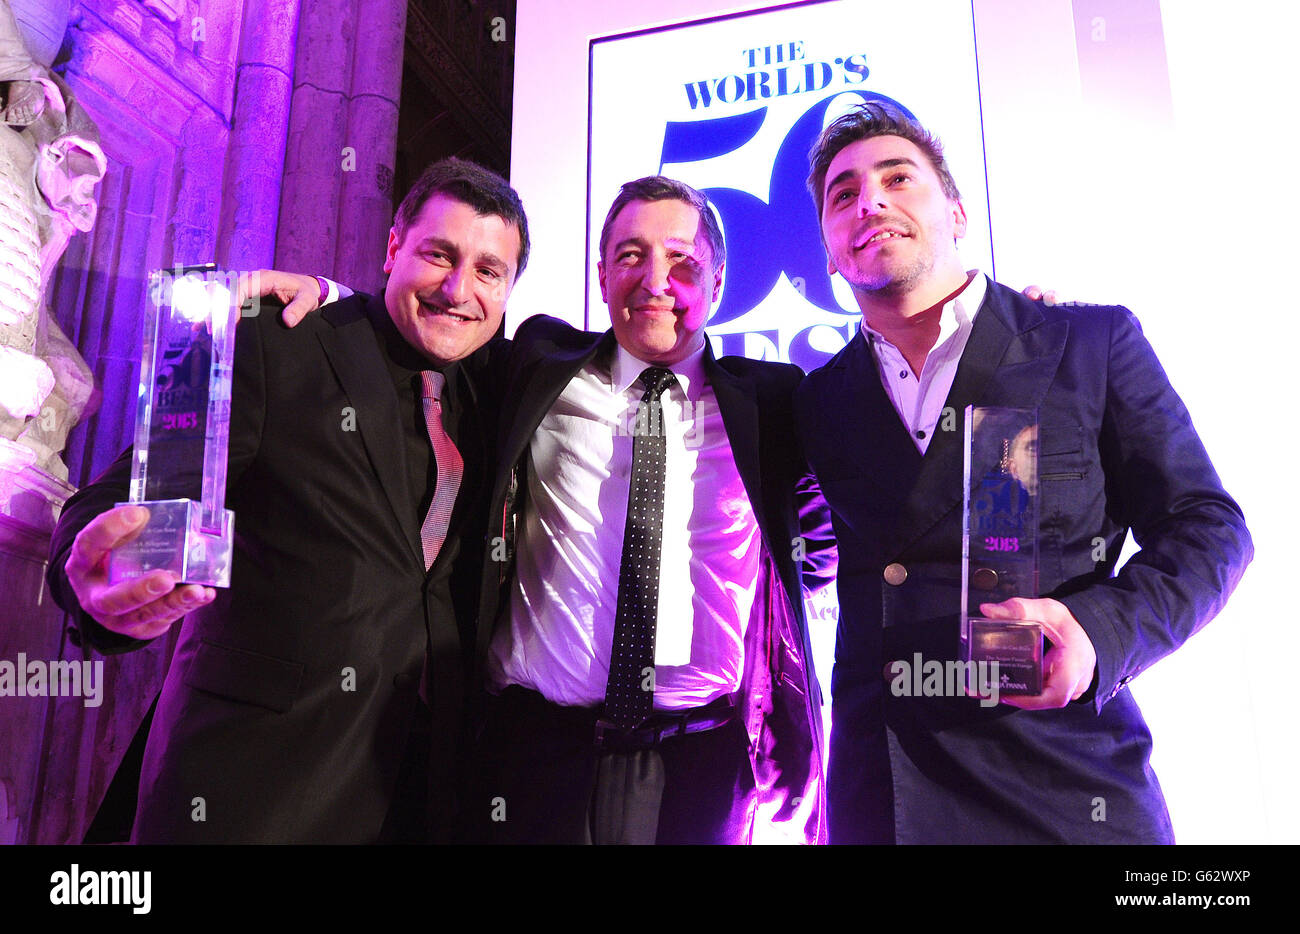 The WorldÕs 50 Best Restaurants Awards 2013 Stock Photo